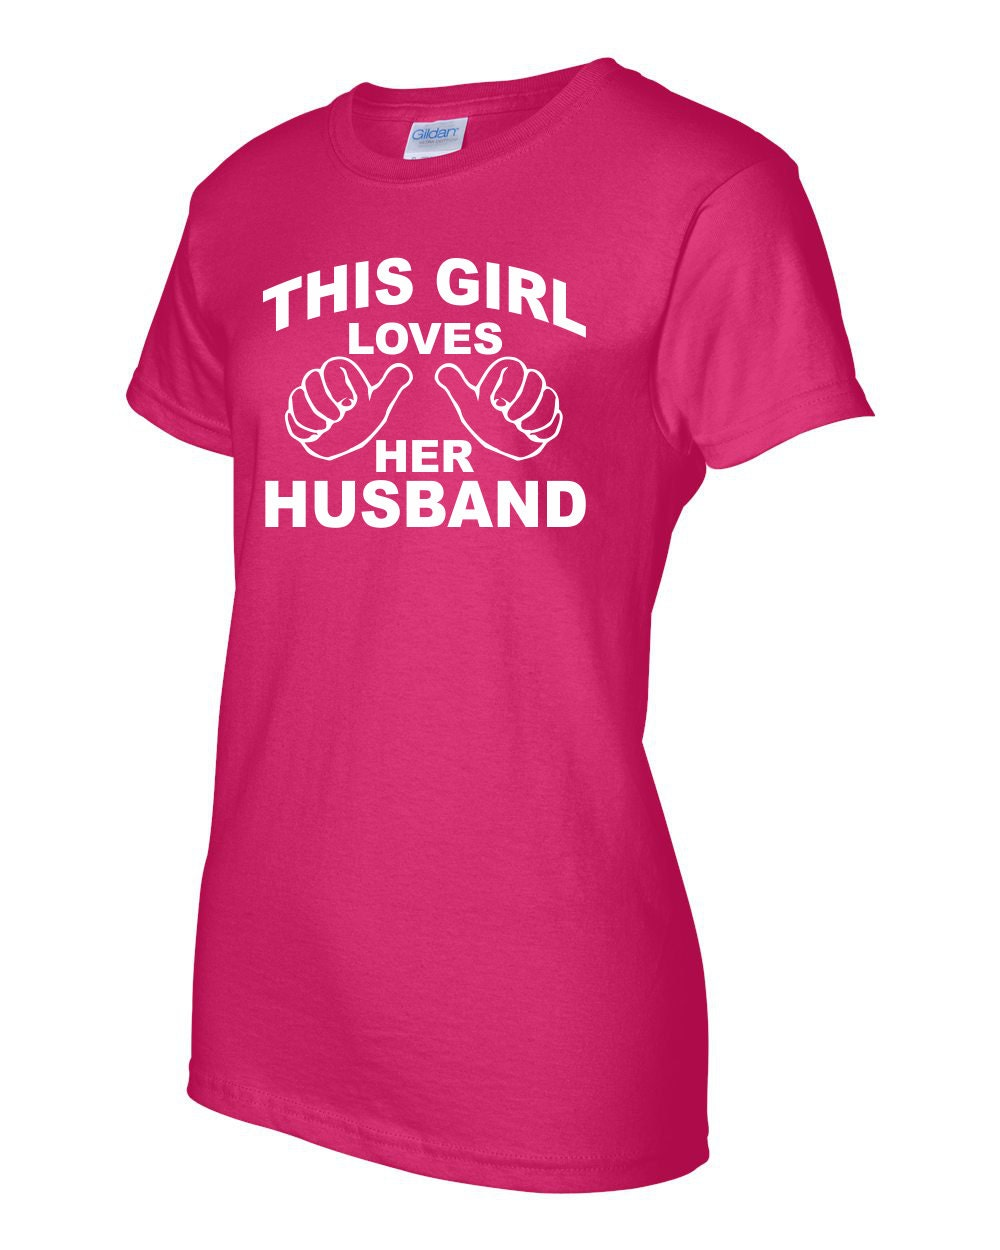 Amazoncom: mother of the bride shirt